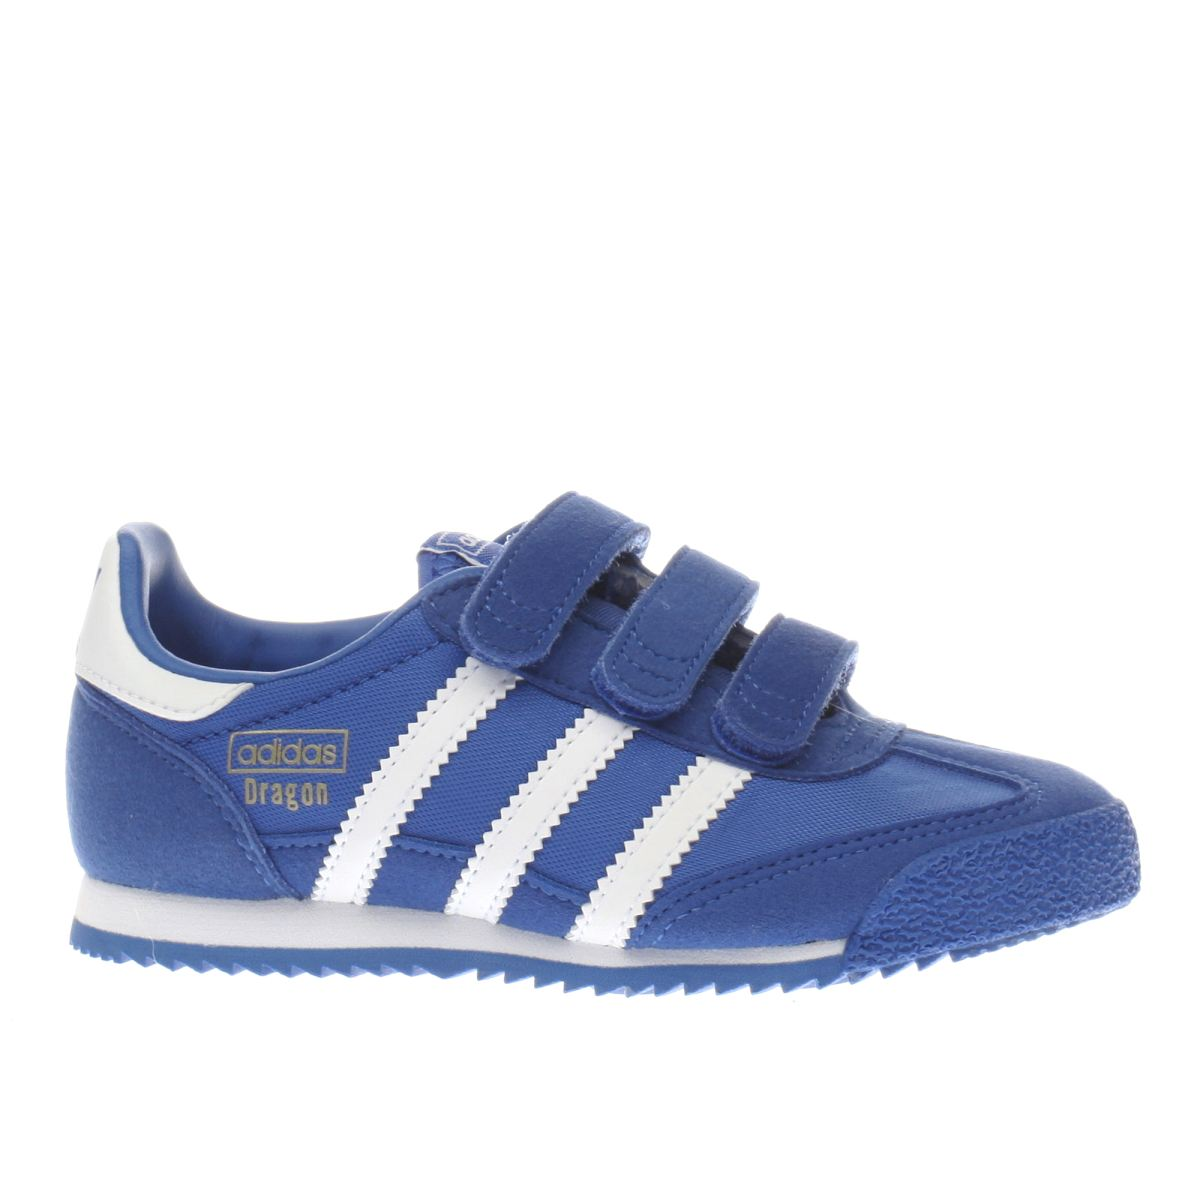 adidas blue dragon Boys Junior Trainers